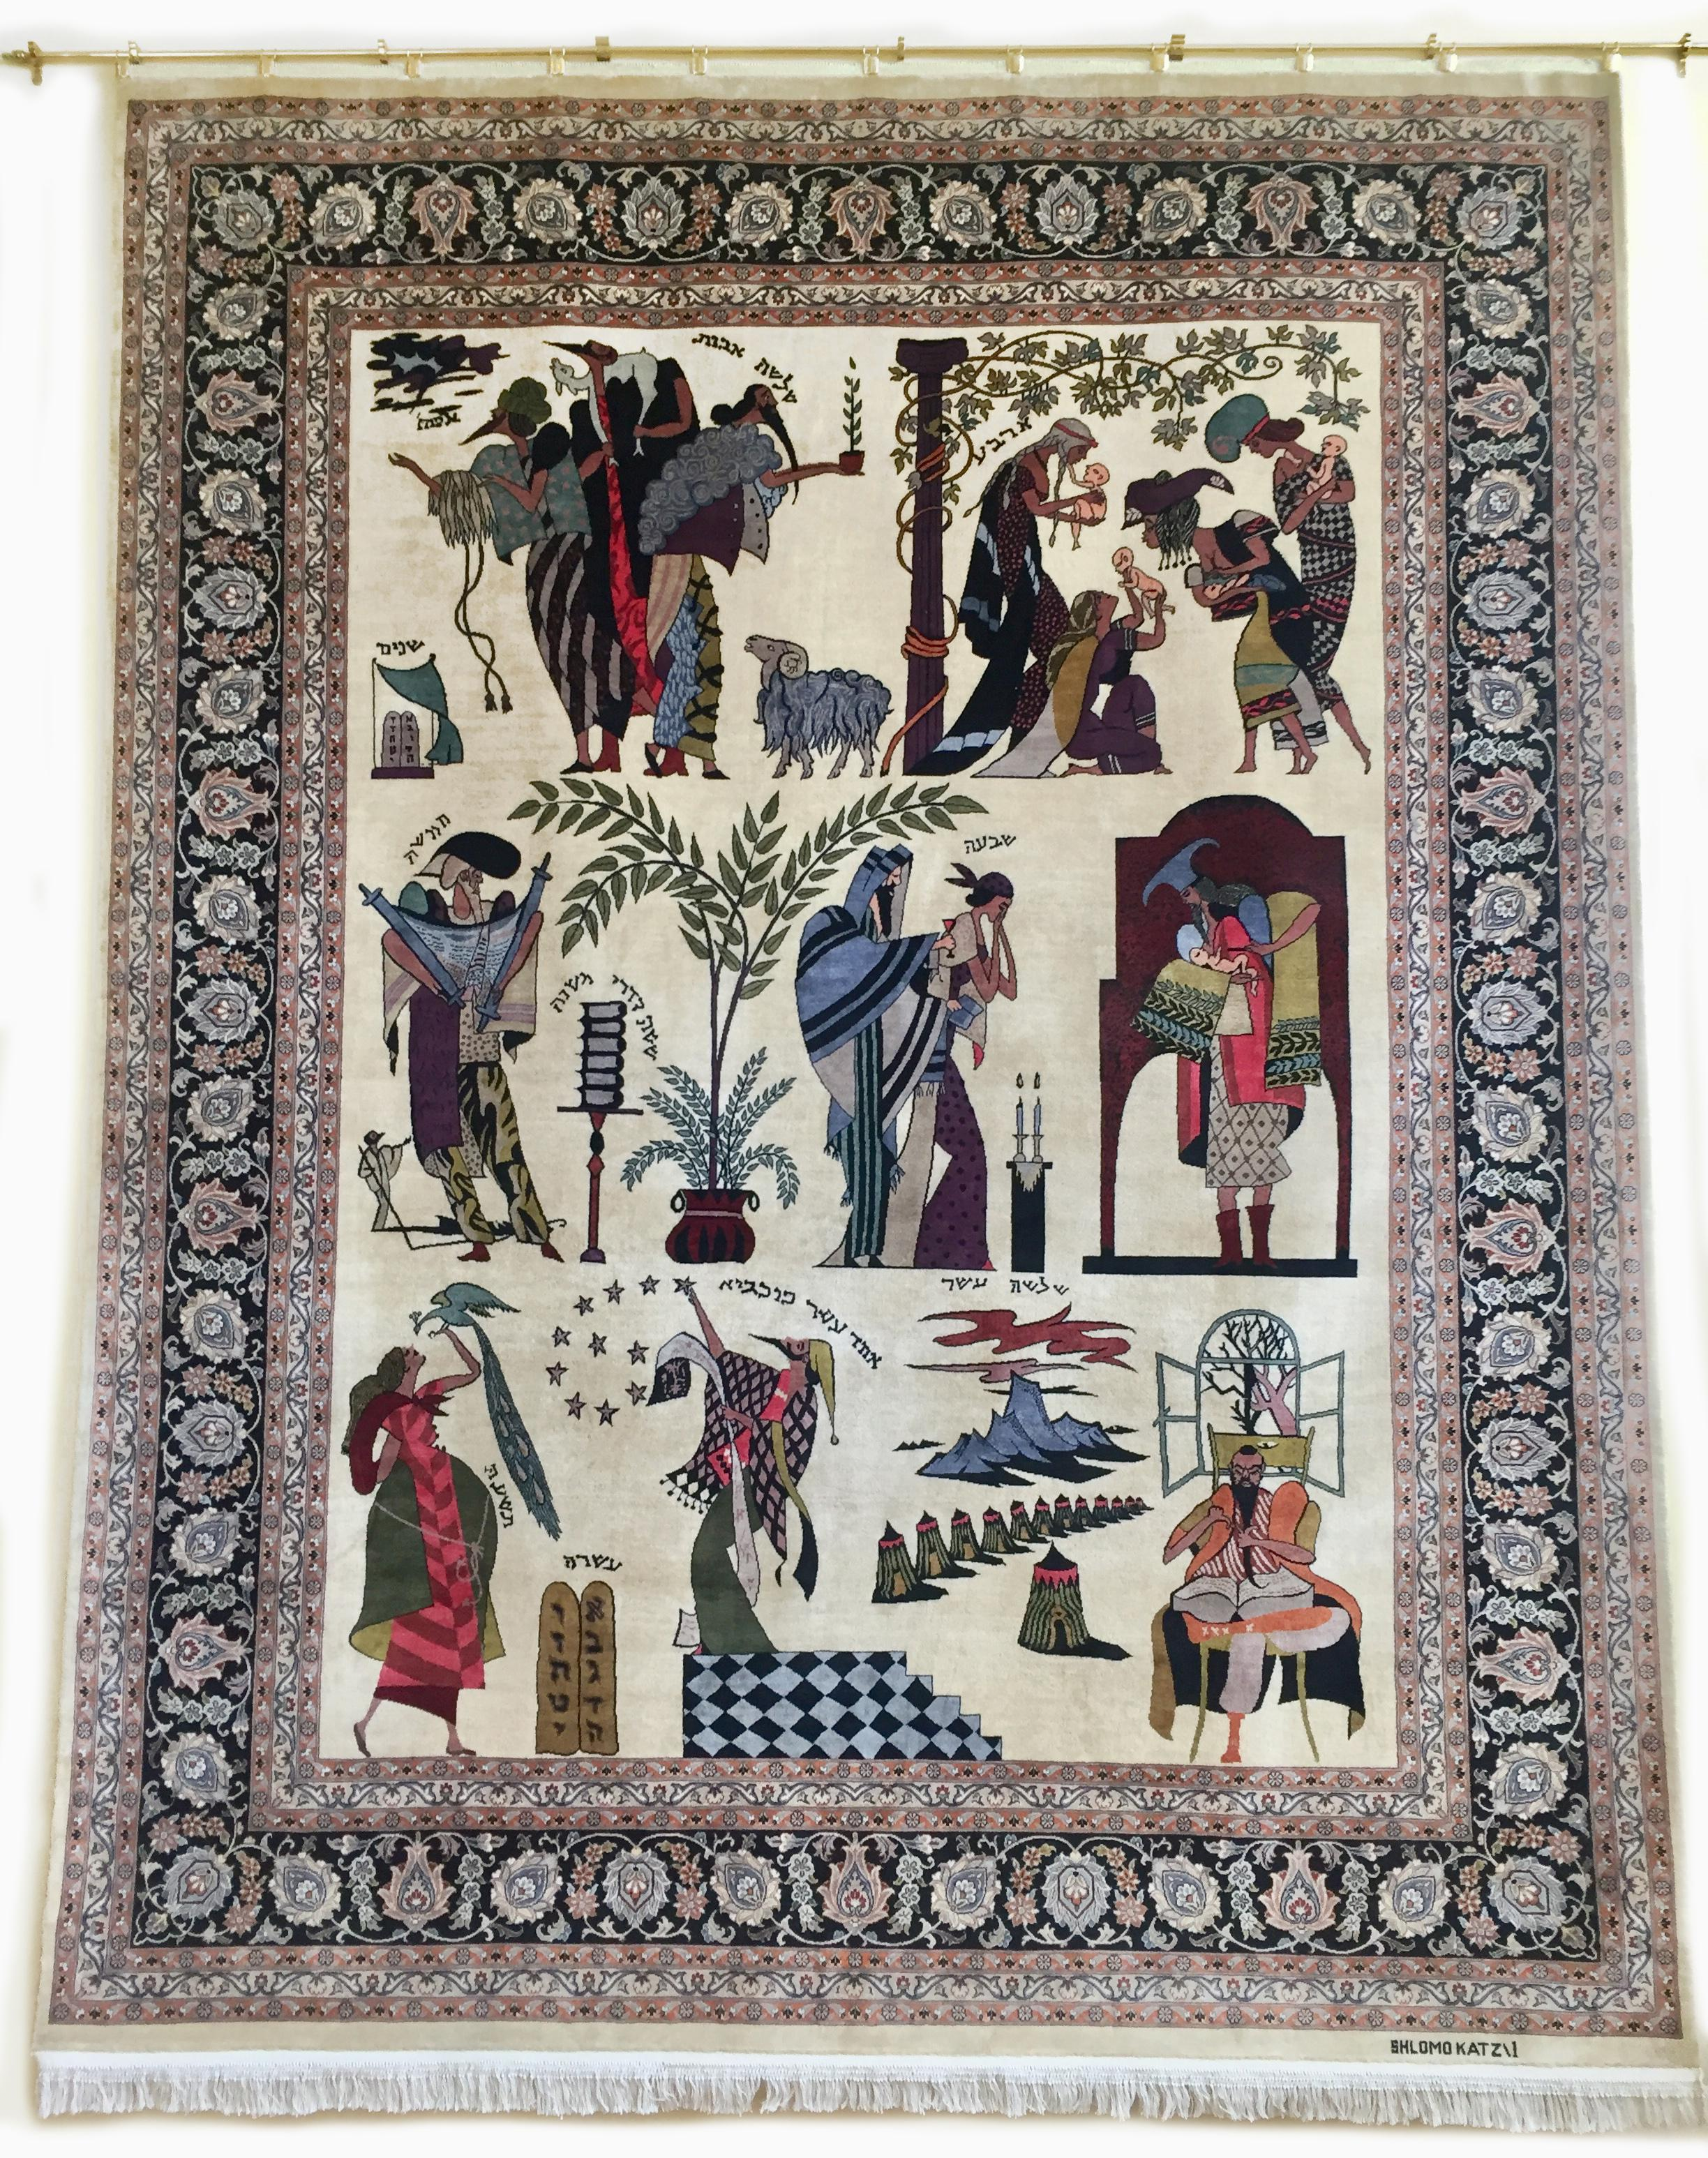 Who Knows One (Passover), Large Tapestry Rug by Shlomo Katz